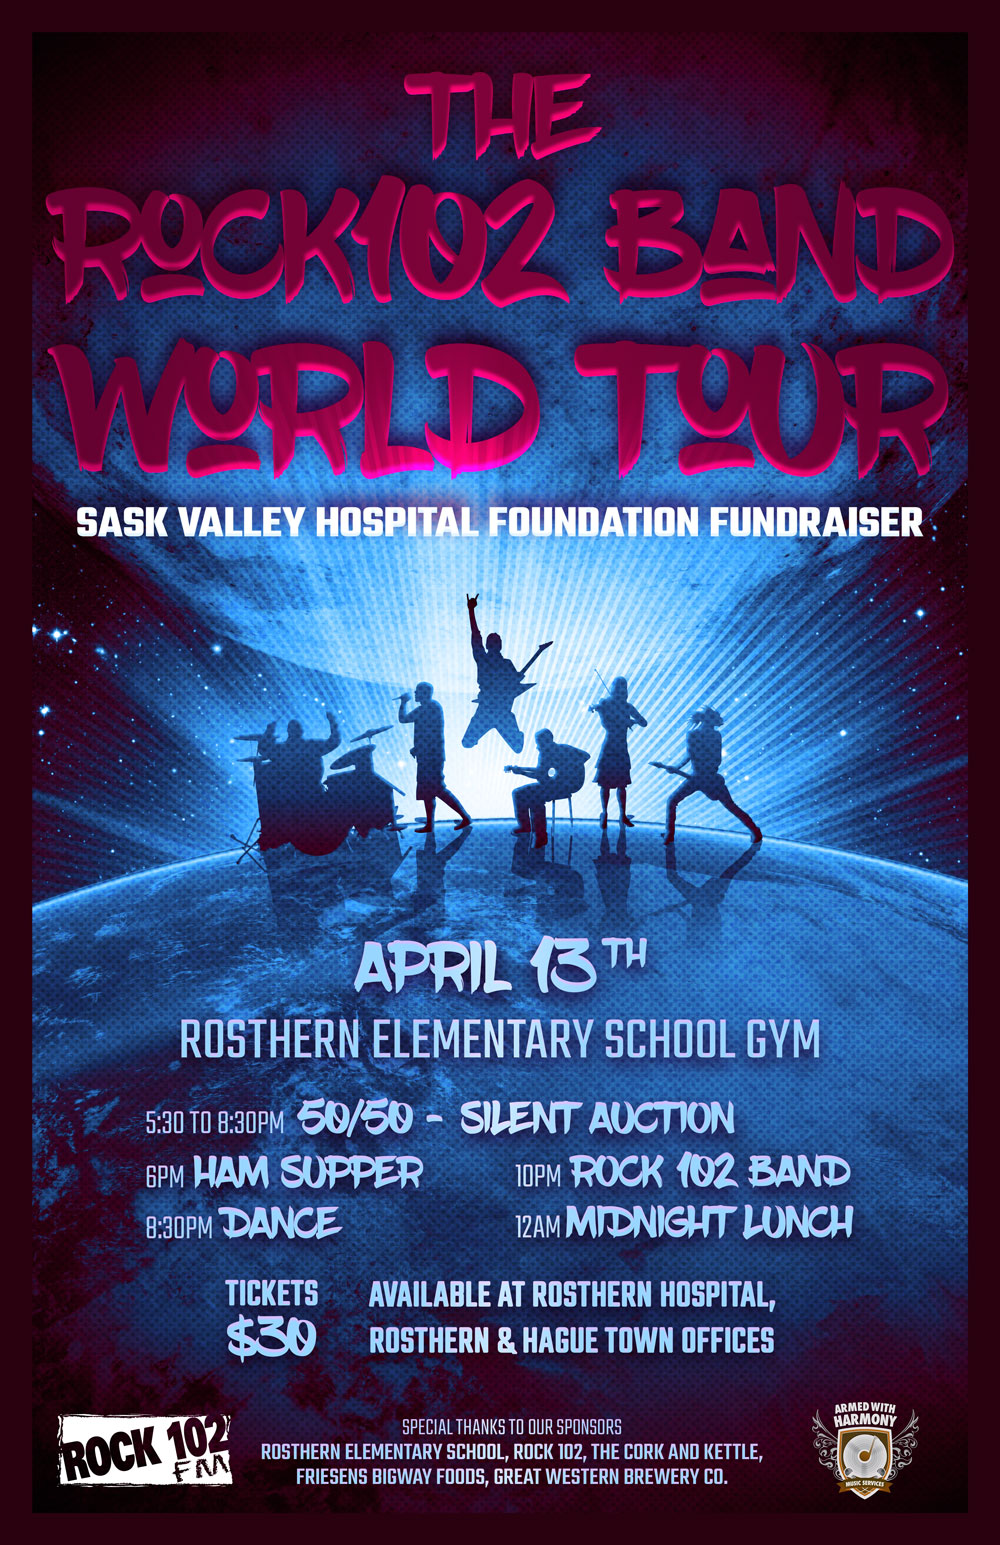 Sask Valley Hospital Foundation Fundraiser @ Rosthern Elementary School | Rosthern | Saskatchewan | Canada